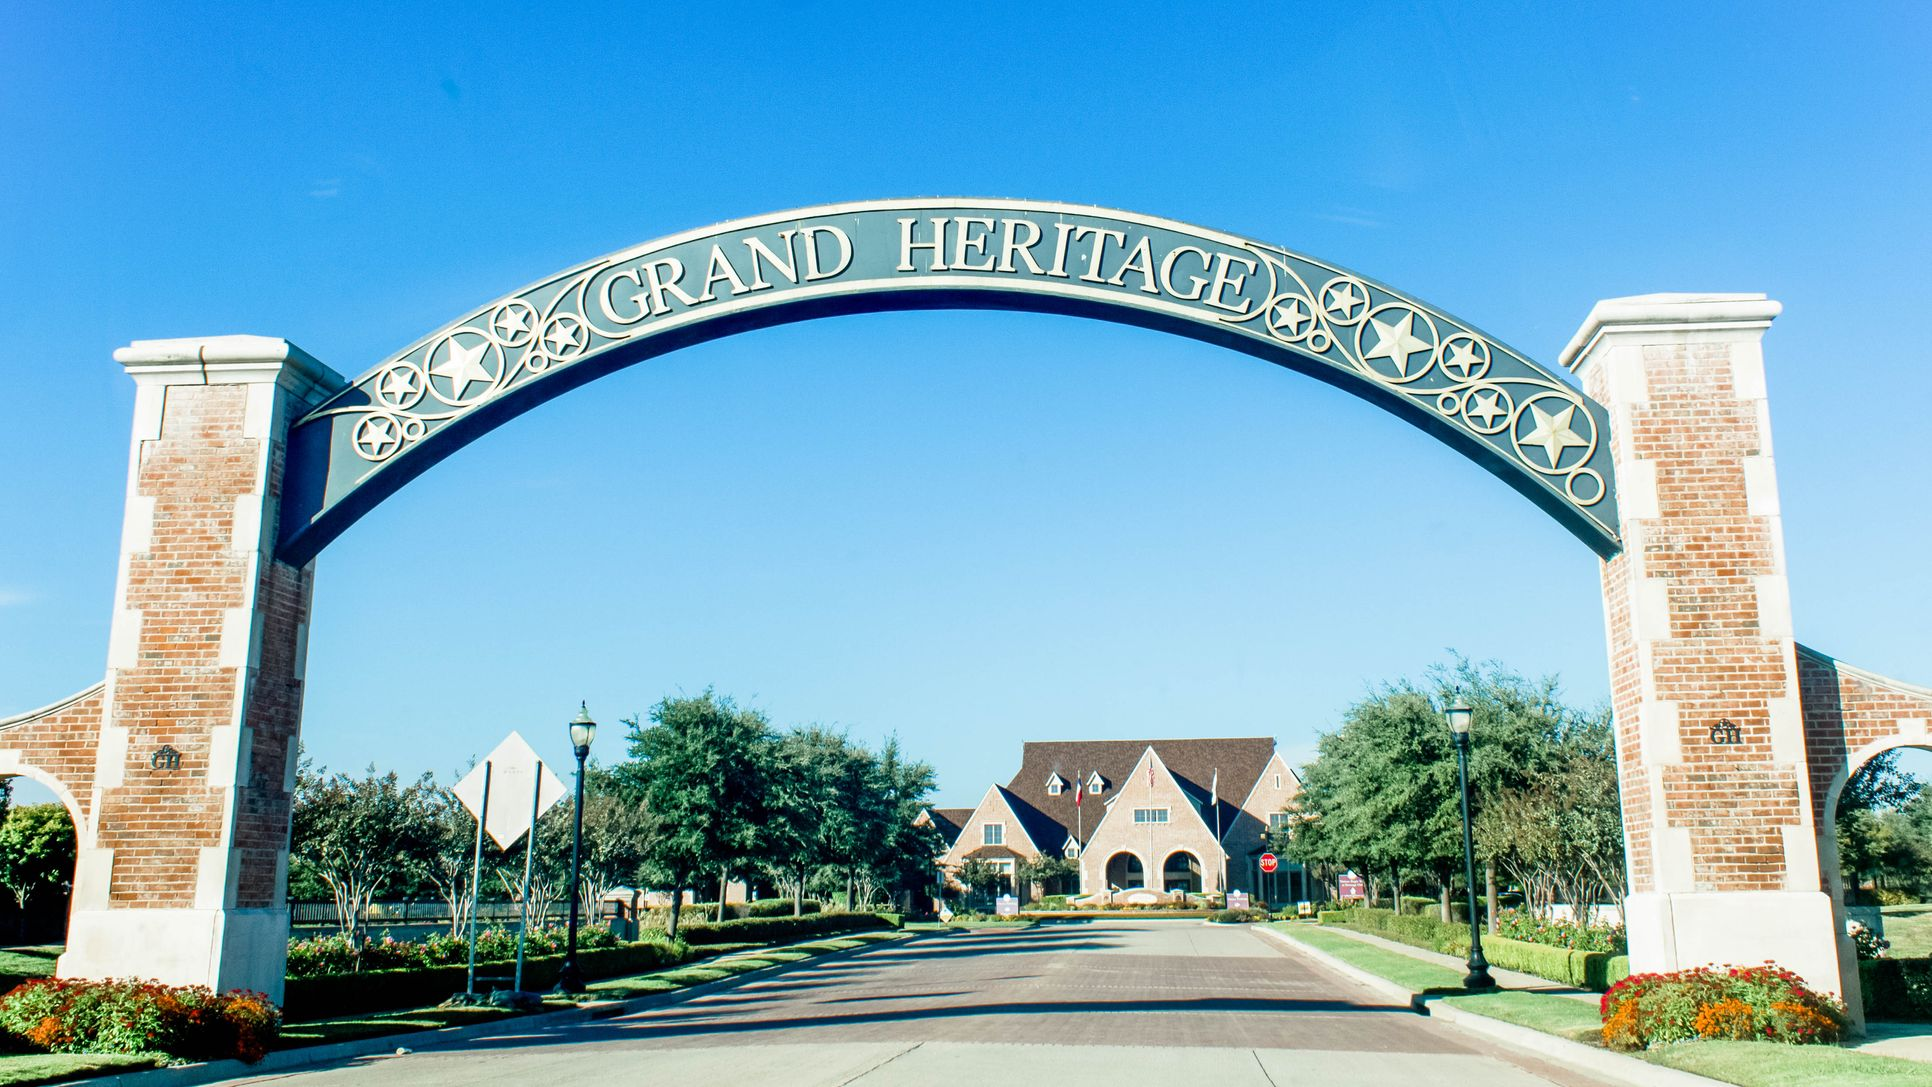 Sign:Grand Heritage Sign